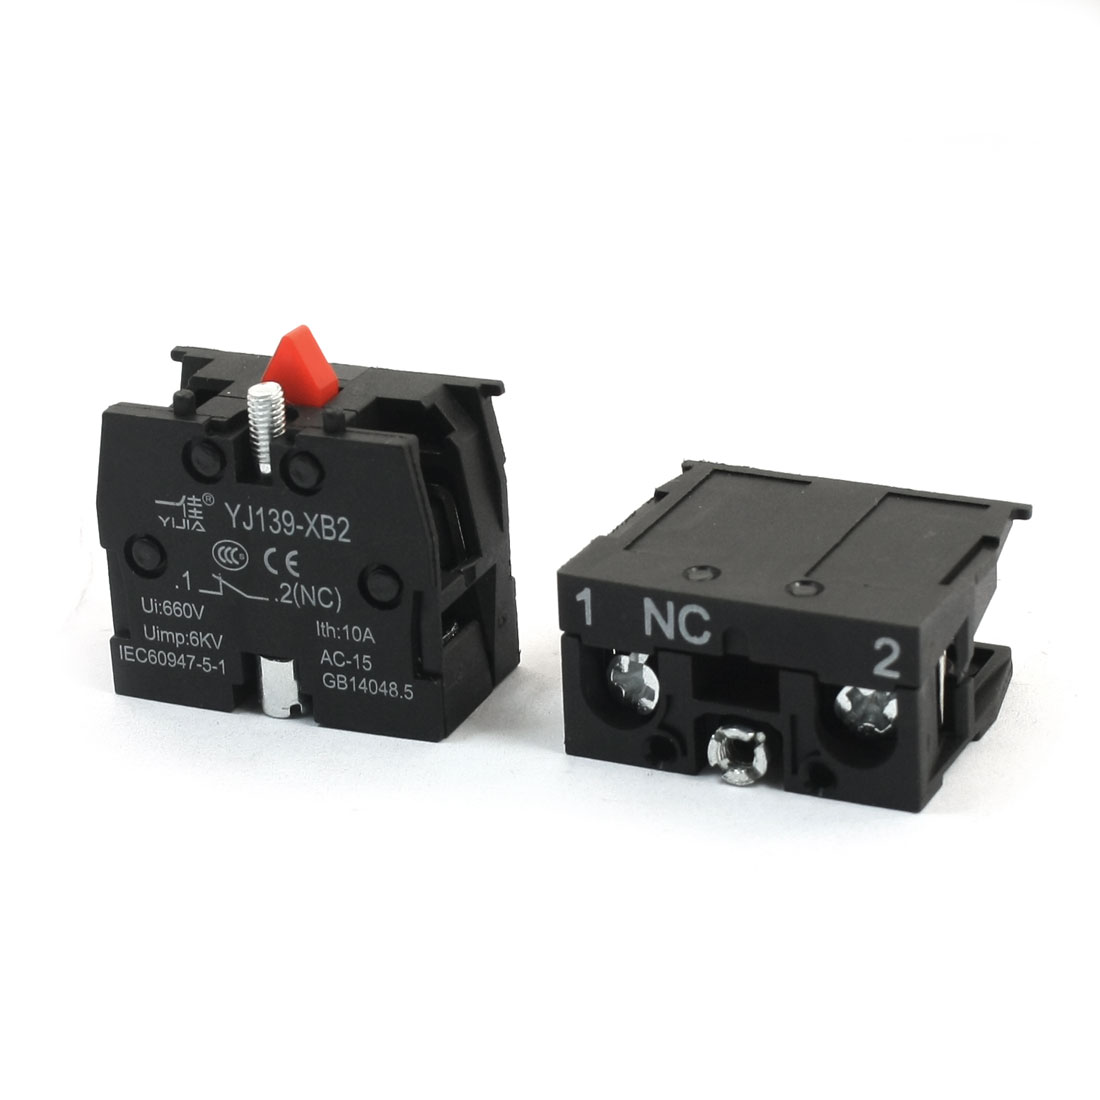 2Pcs 600V 10A SPST NC Normal Close 2 Screw Terminal Spring Load Black Push Button Switch Auxiliary Contact